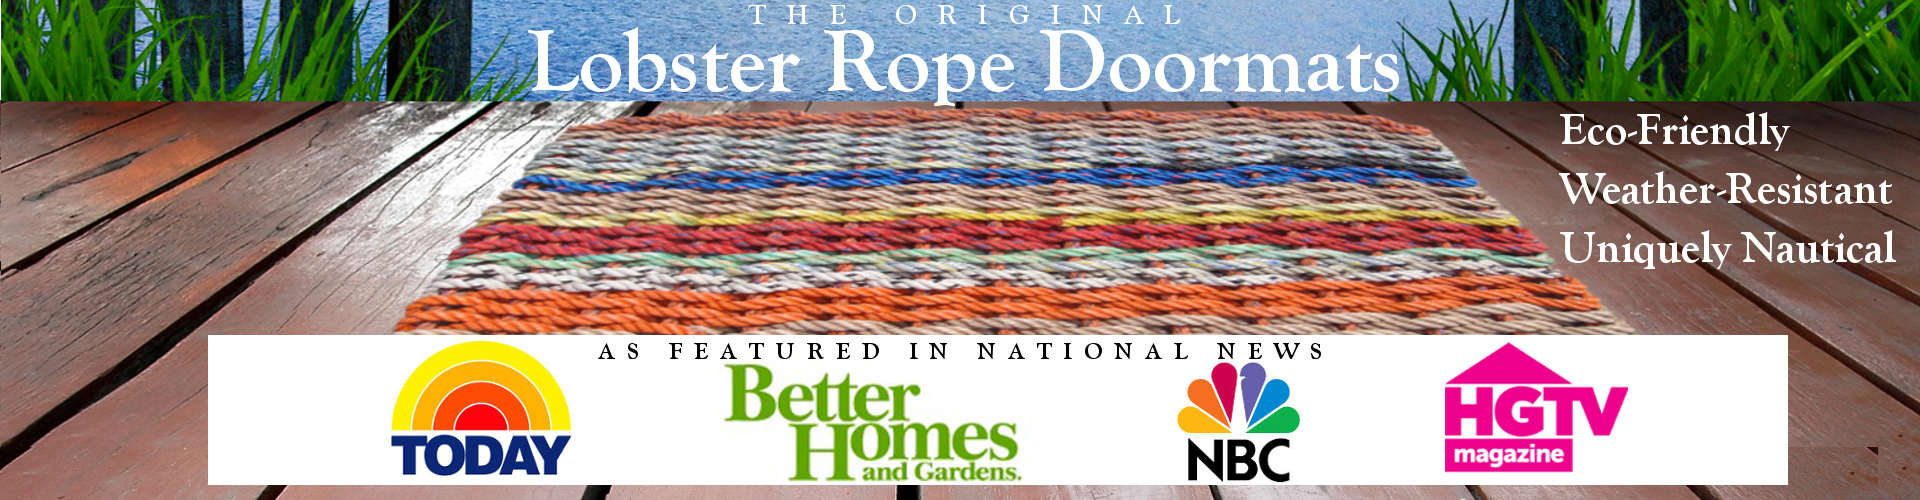 The Original Lobster Rope Doormats(TM)... Eco-Friendly, Weather-Resistant, Uniquely Nautical... As Features in National News: NBC TODAY Show, Better Homes & Gardens, NBC News, HGTV Magazine - , Handcrafted, Made in USA